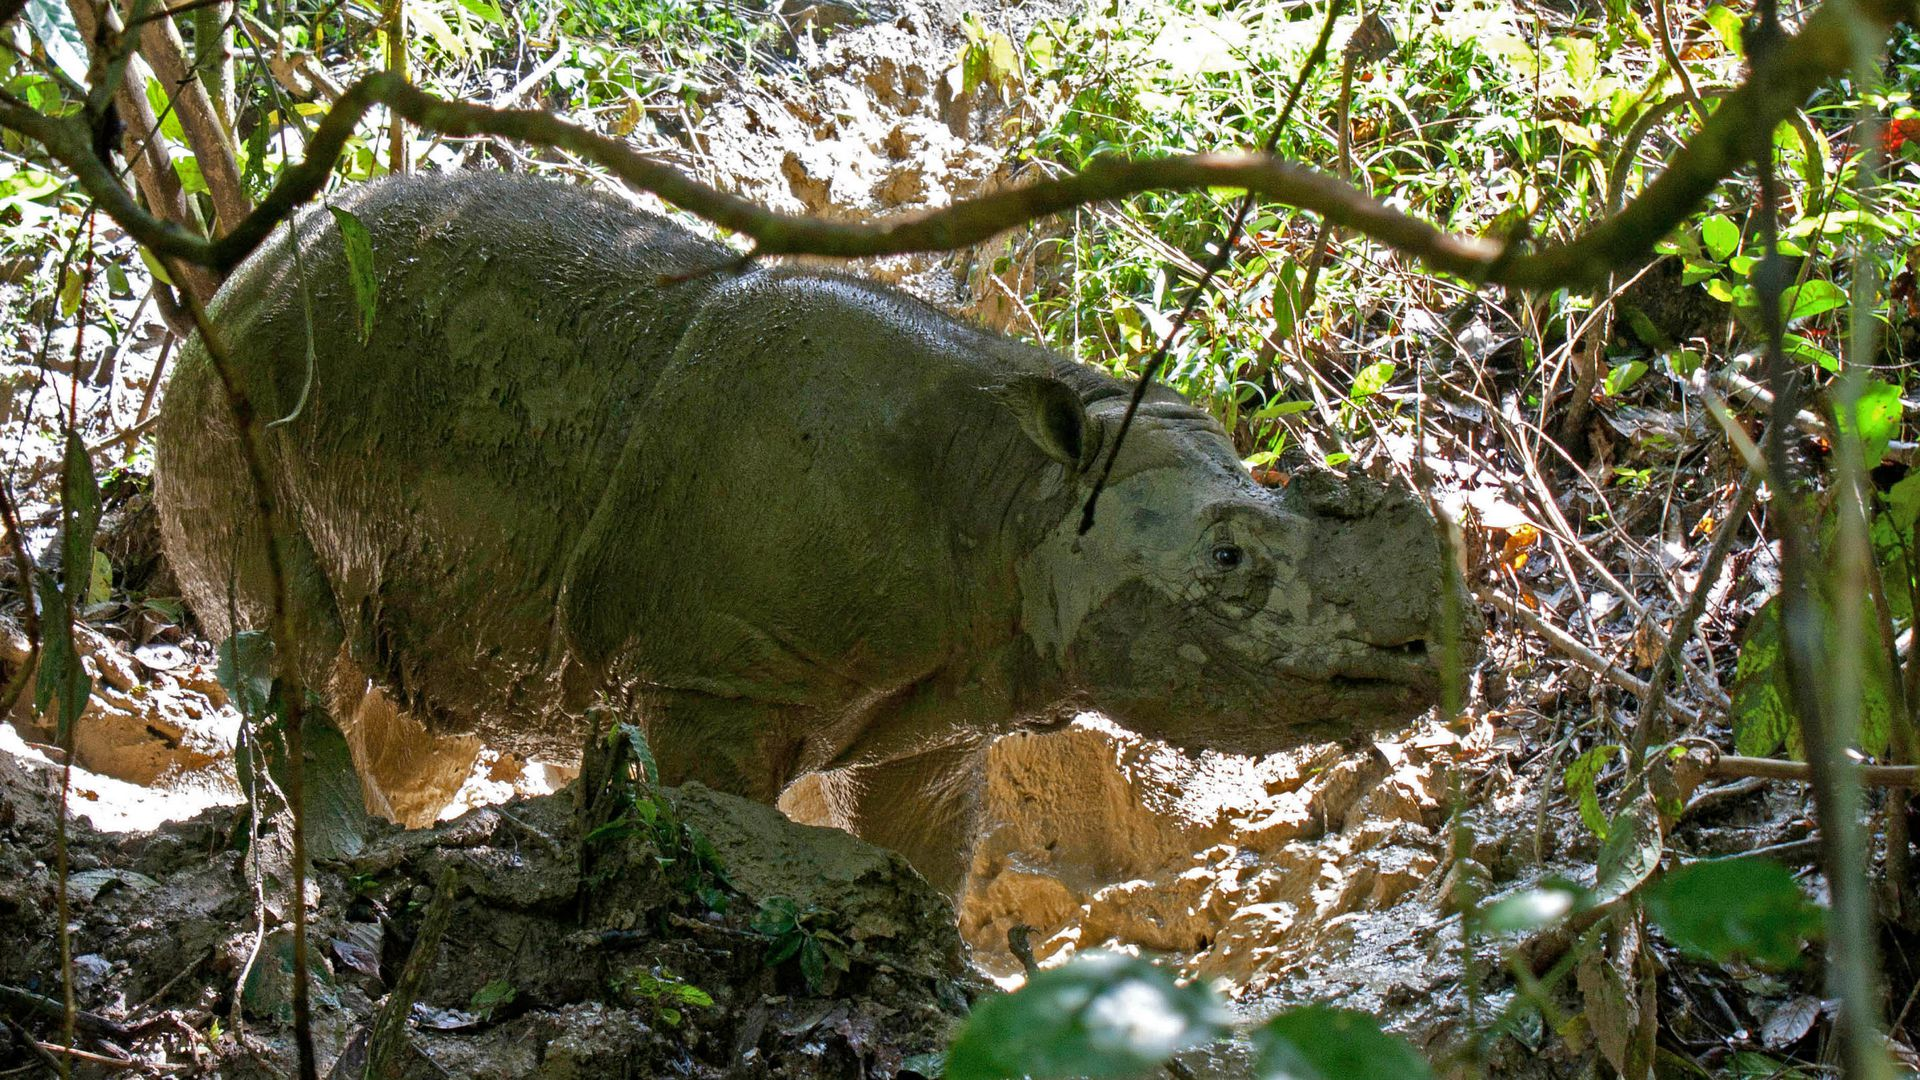 A Sumatran rhinoceros stands in the rhinocerous protection station Tabin in the jungle of Borneo near Lahad Datu, Malaysia, 29 October 2013.